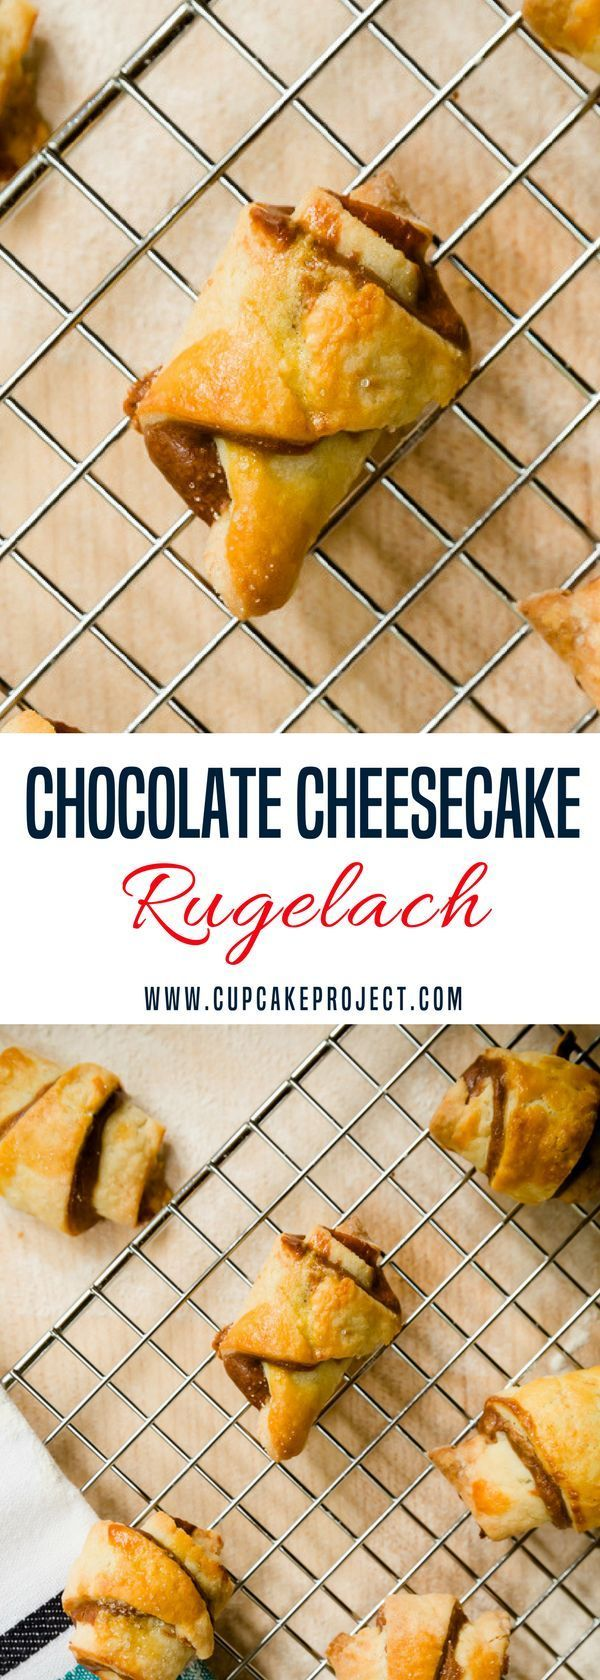 Looking for some homemade and from scratch dessert recipes? This Chocolate Cheesecake Rugelach is filled with chocolate cheesecake, you'll definitely drool for it! More easy and from scratch baking recipes from #CupcakeProject #dessert #baking